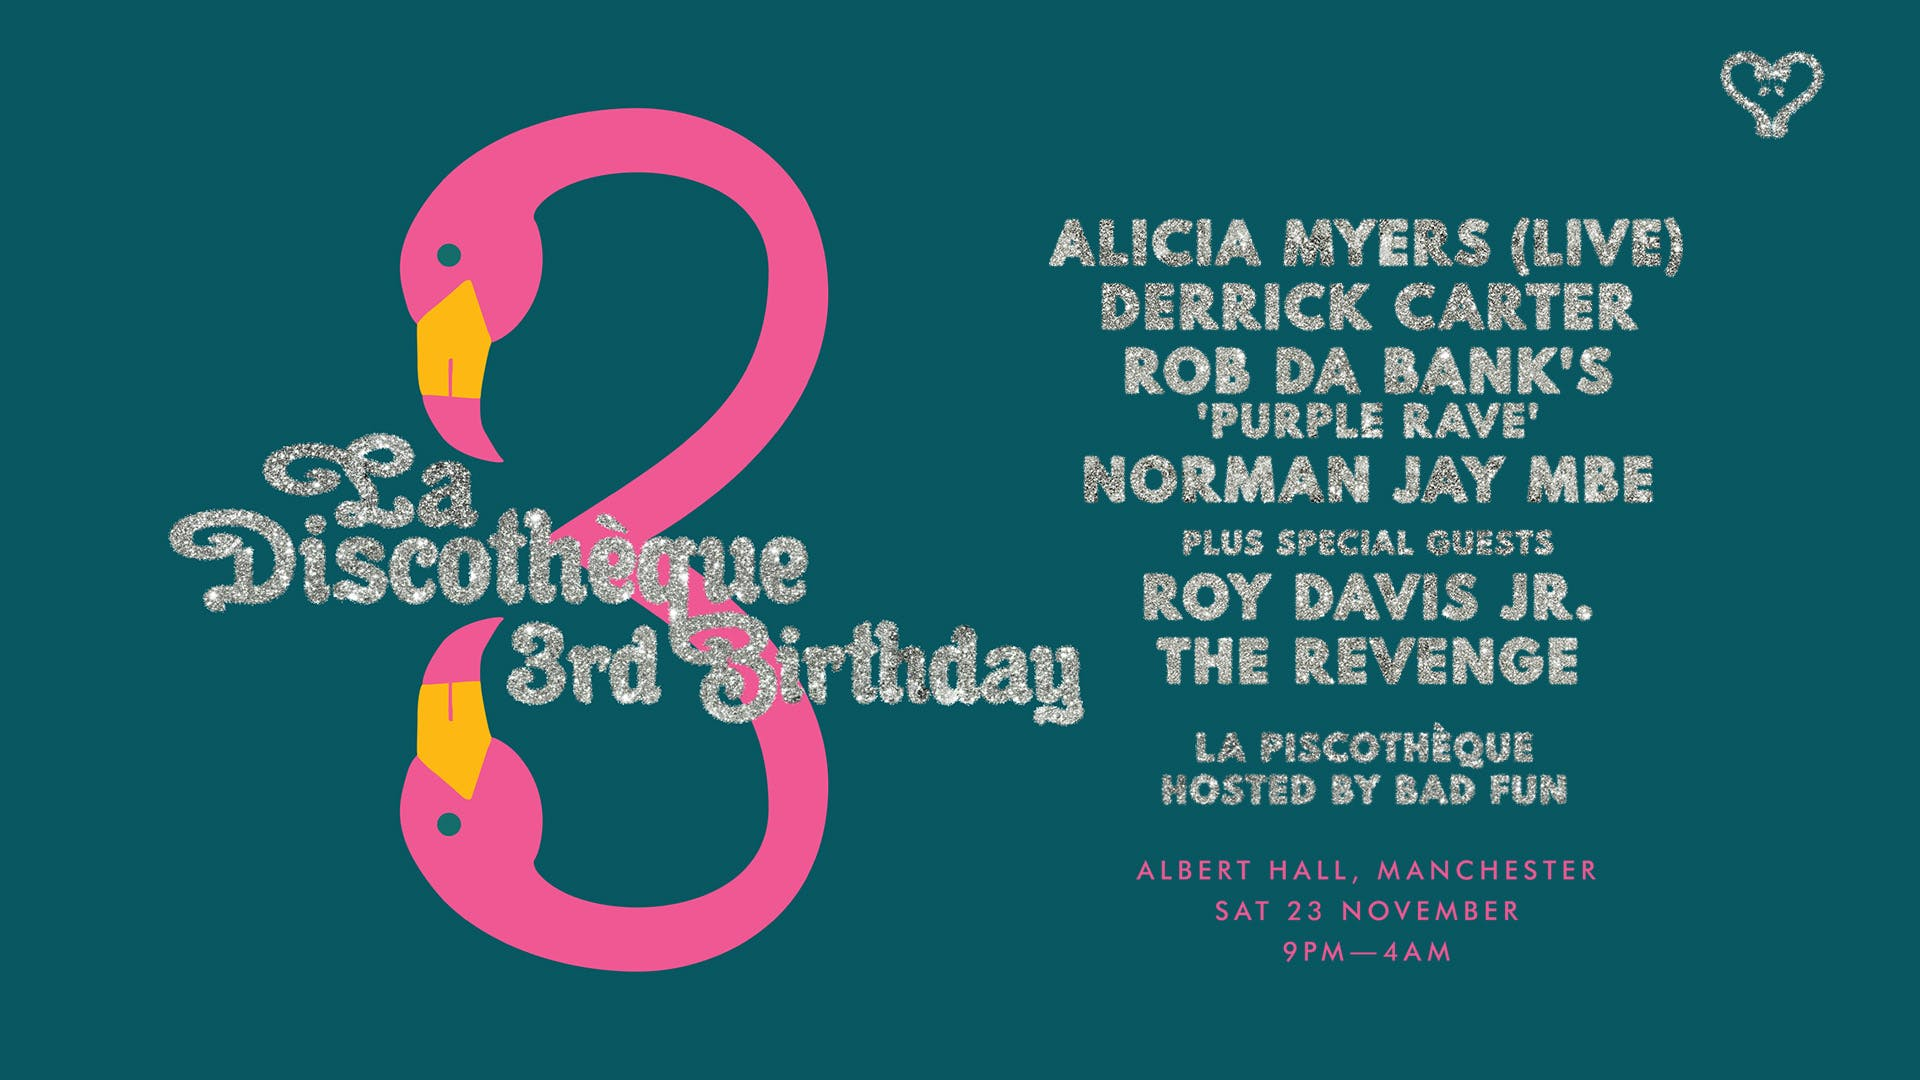 La Discotheque 3rd Birthday